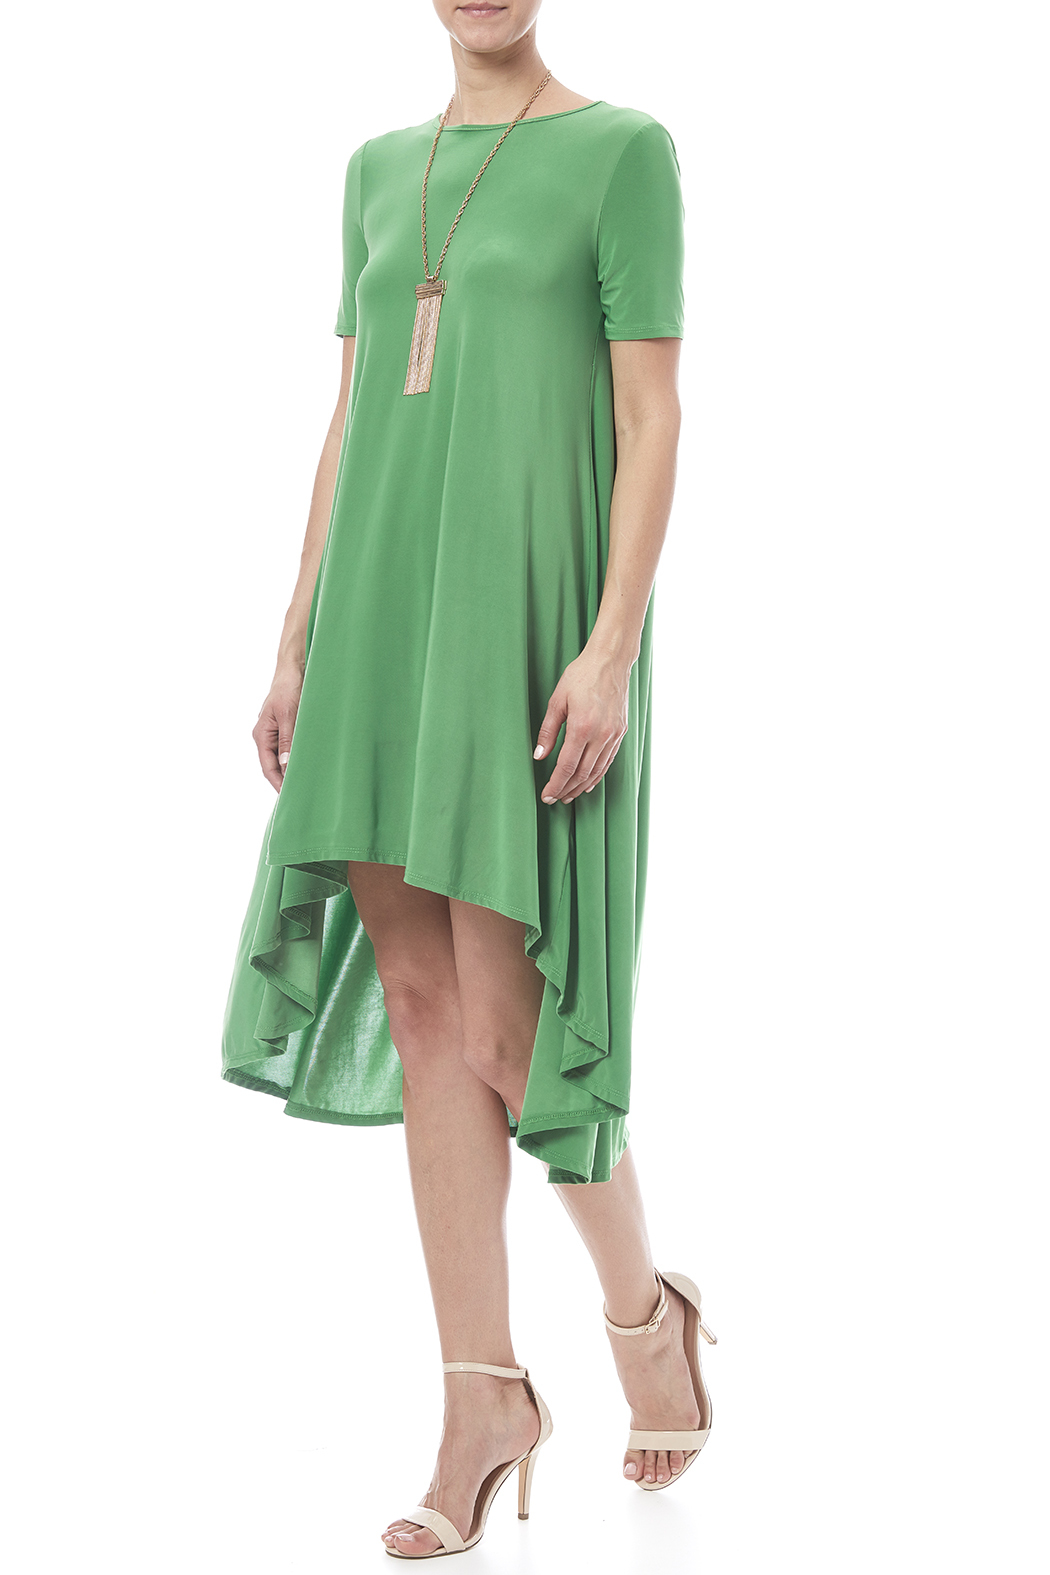 Solo La Fee Emerald High Low Dress - Front Full Image